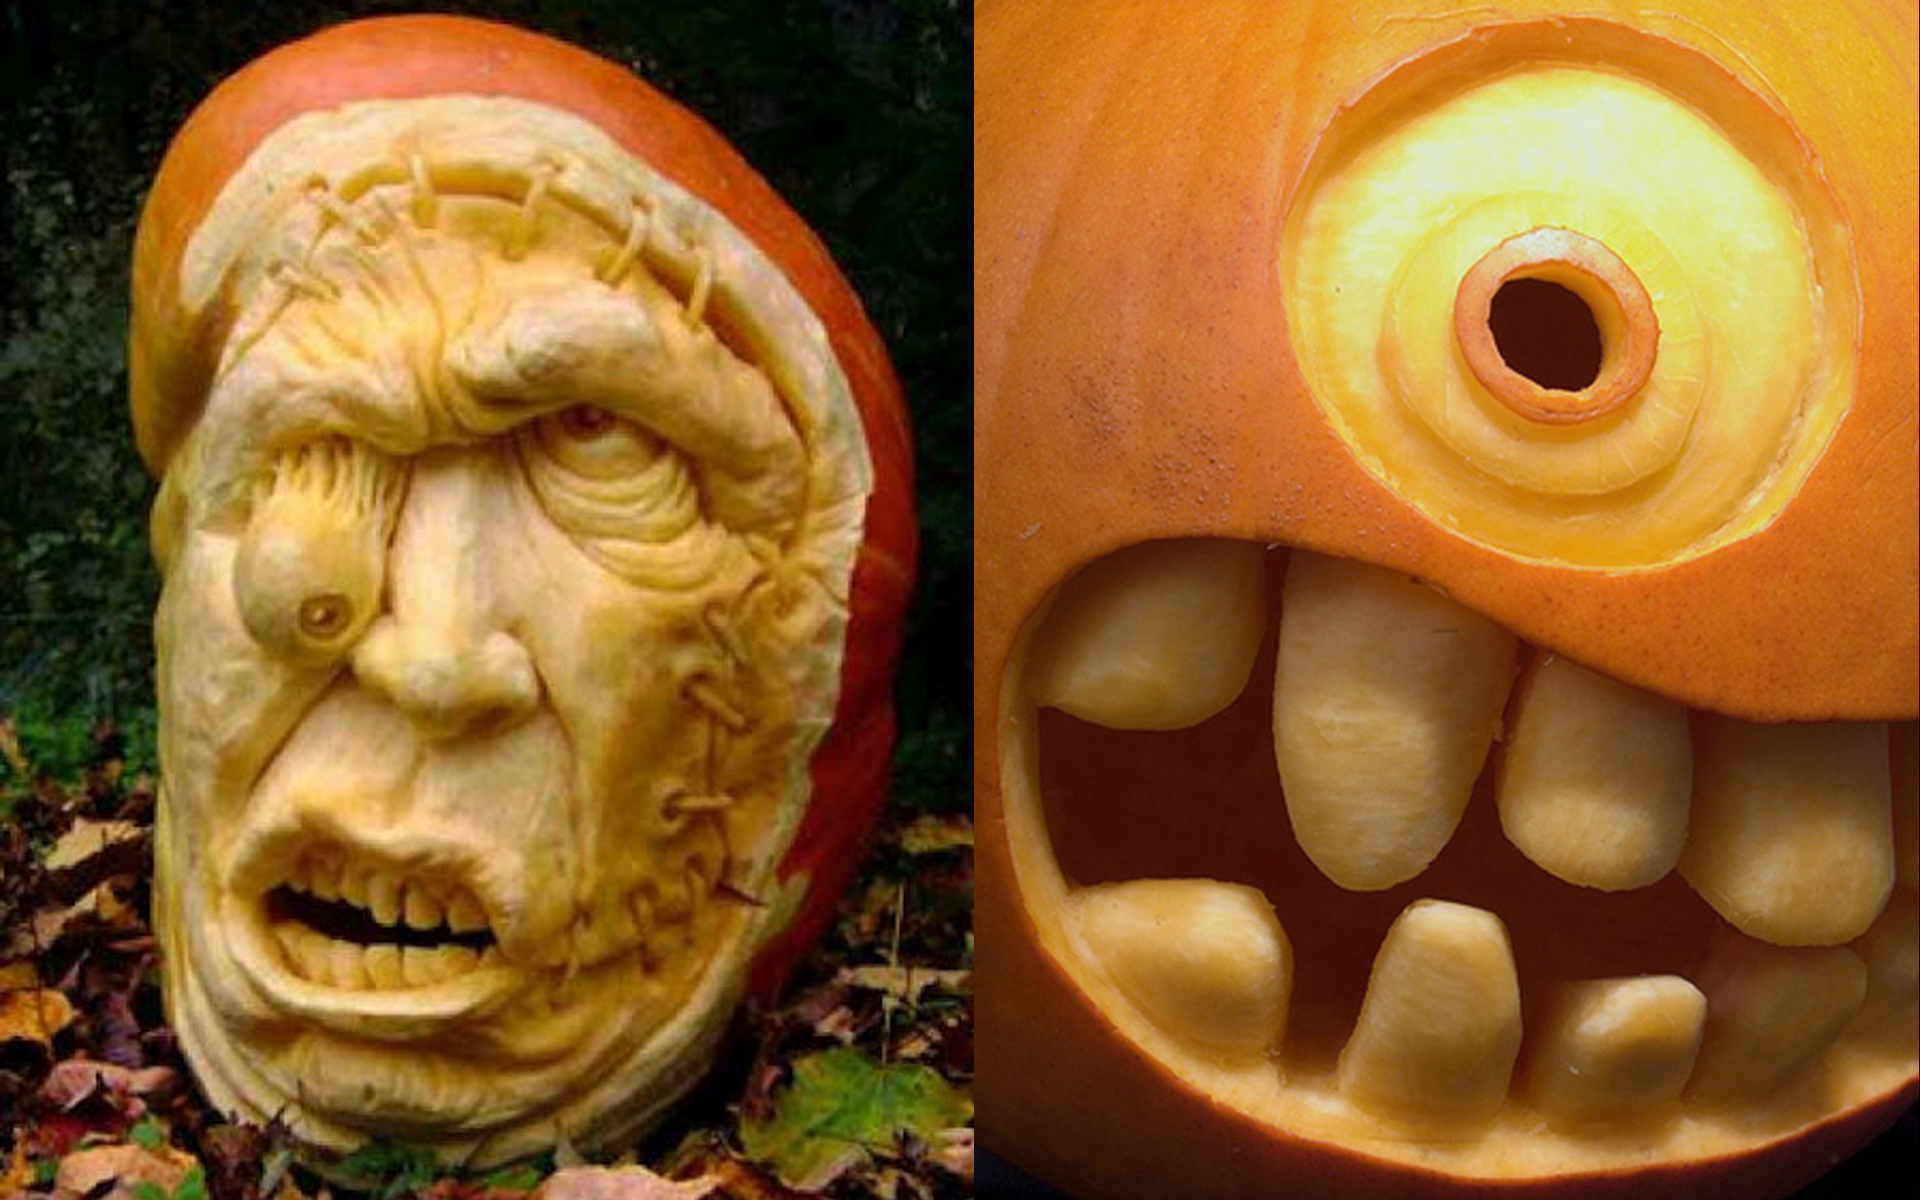 funny eyes halloween pumpkin carving - Cool Halloween Pumpkin Designs